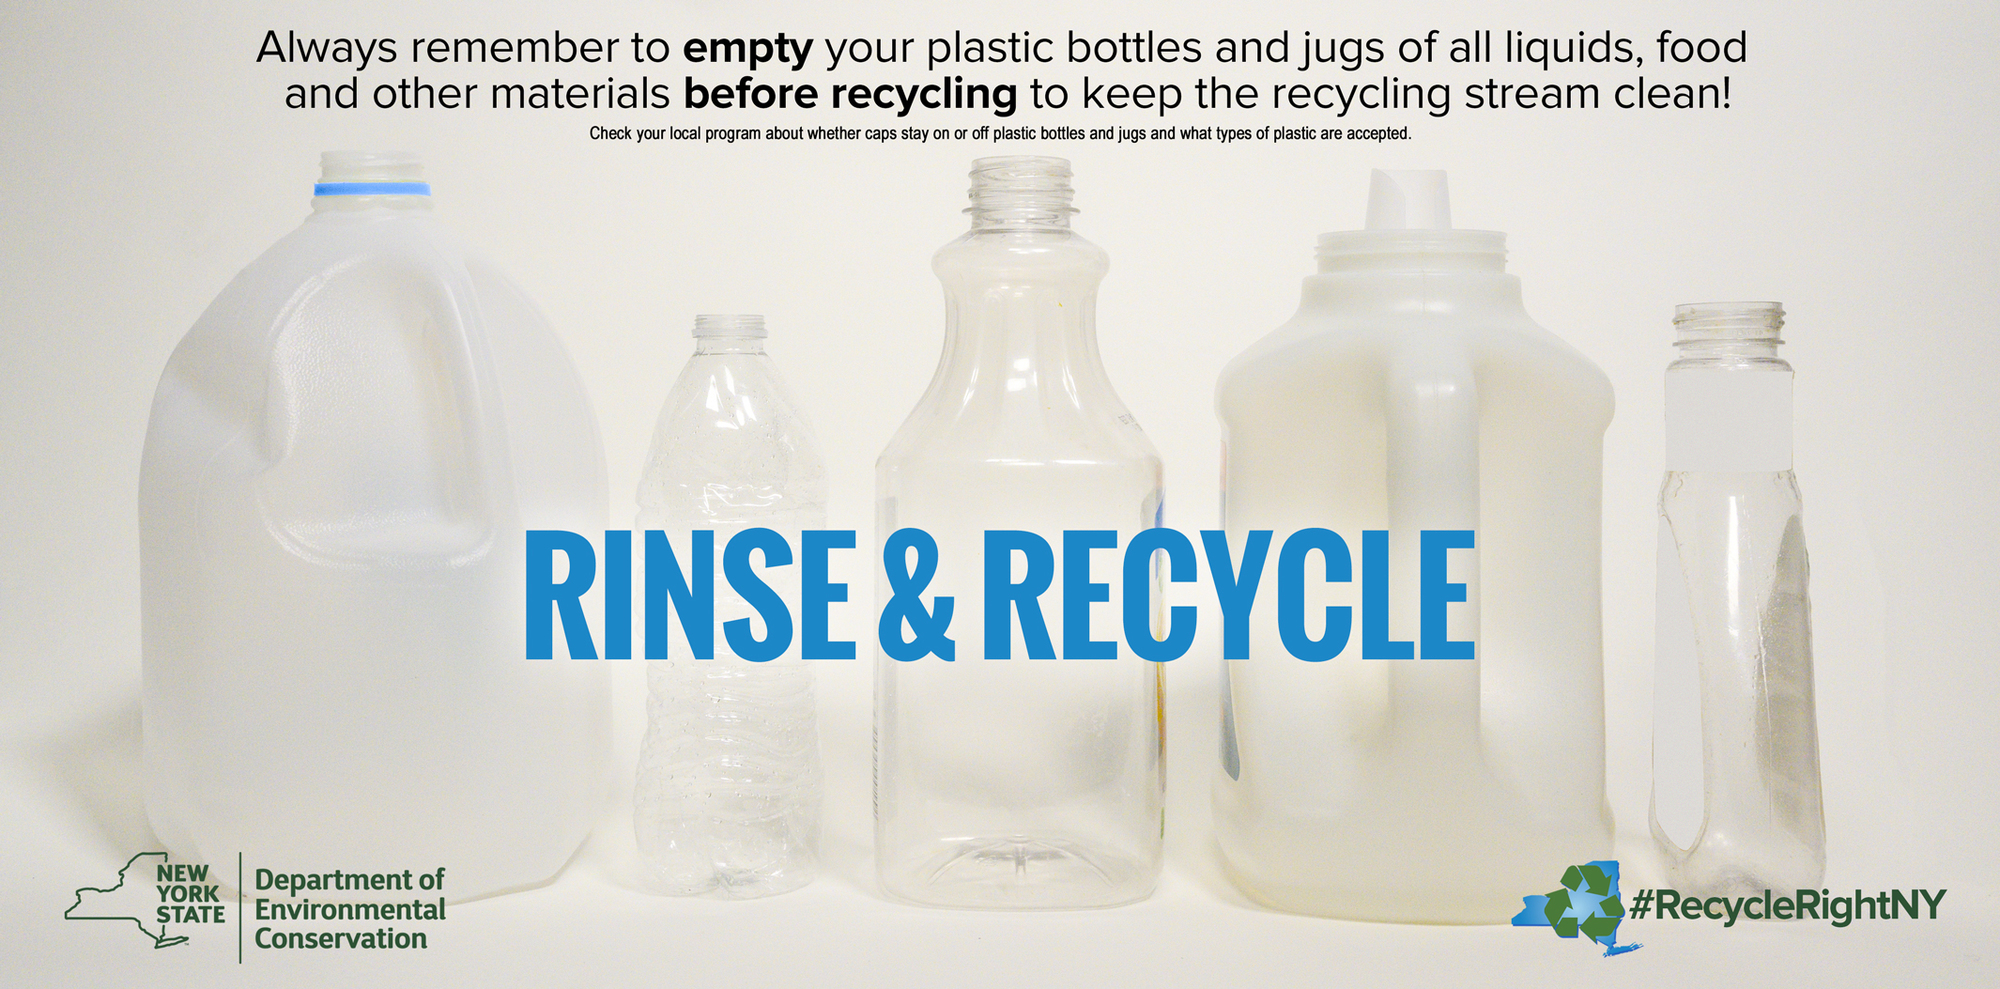 RinseRecycle03